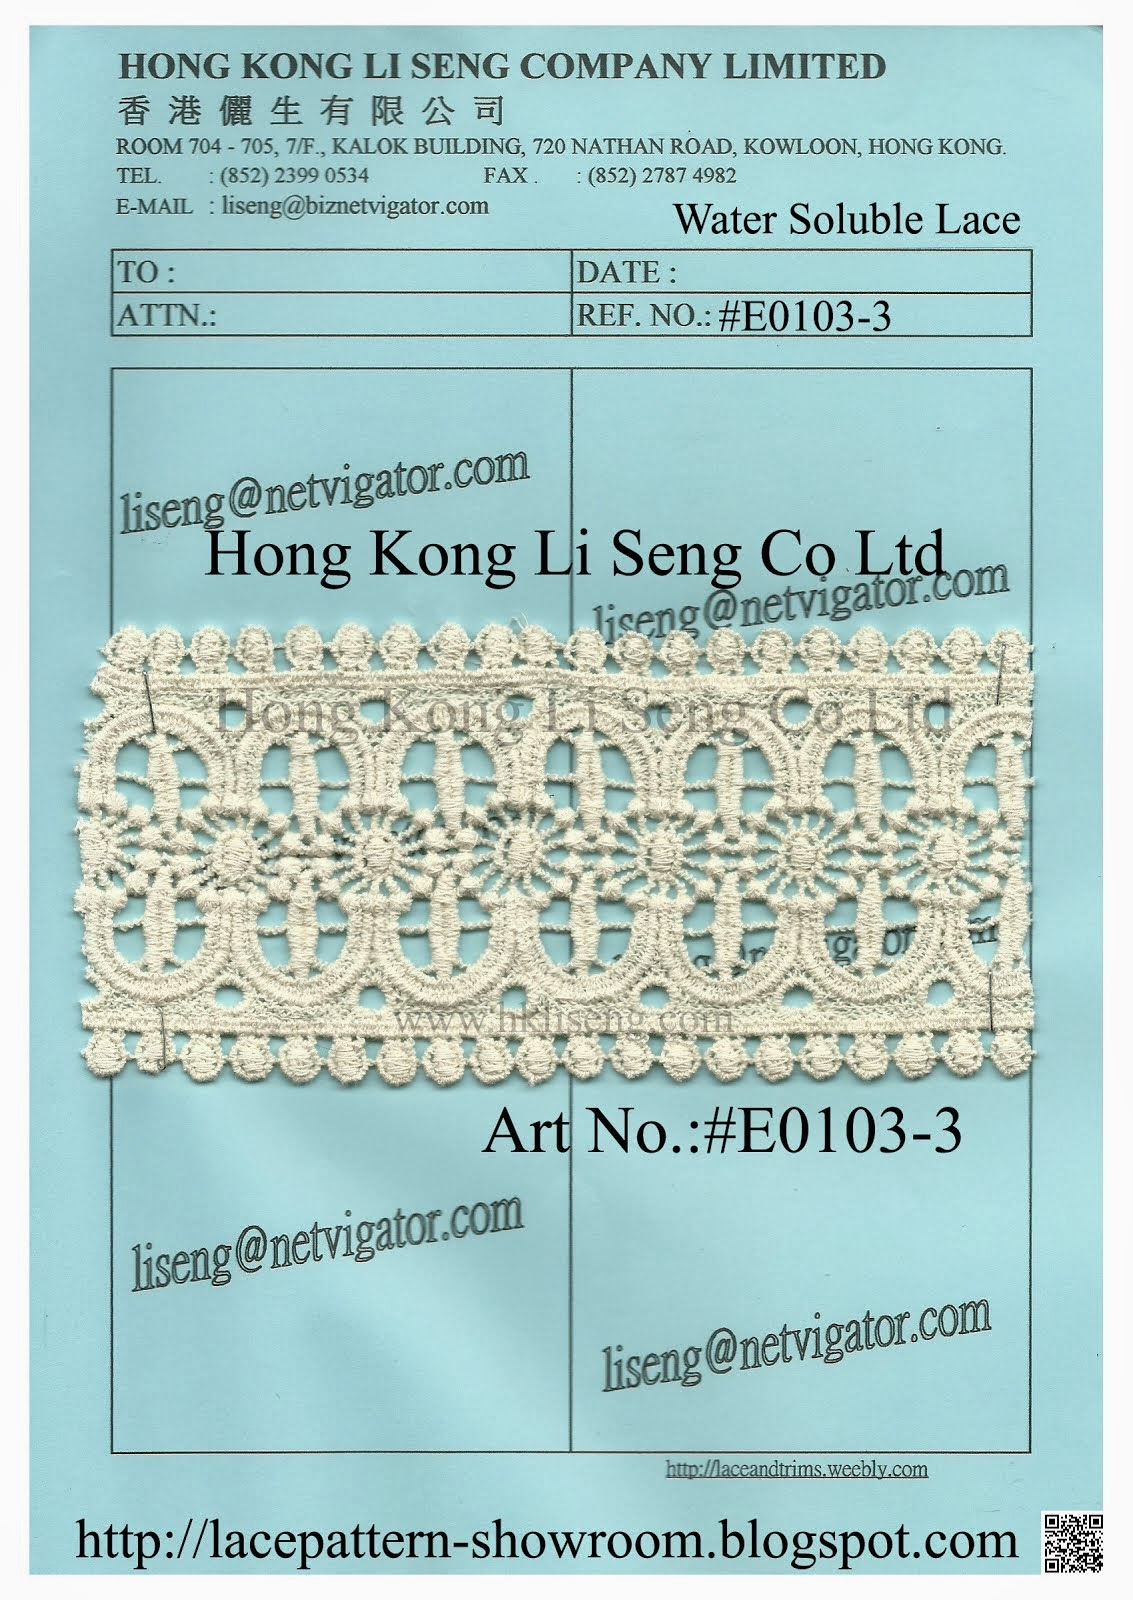 New Pattern Water Soluble Lace Manufacturer Wholesale and Supplier - Hong Kong Li Seng Co Ltd